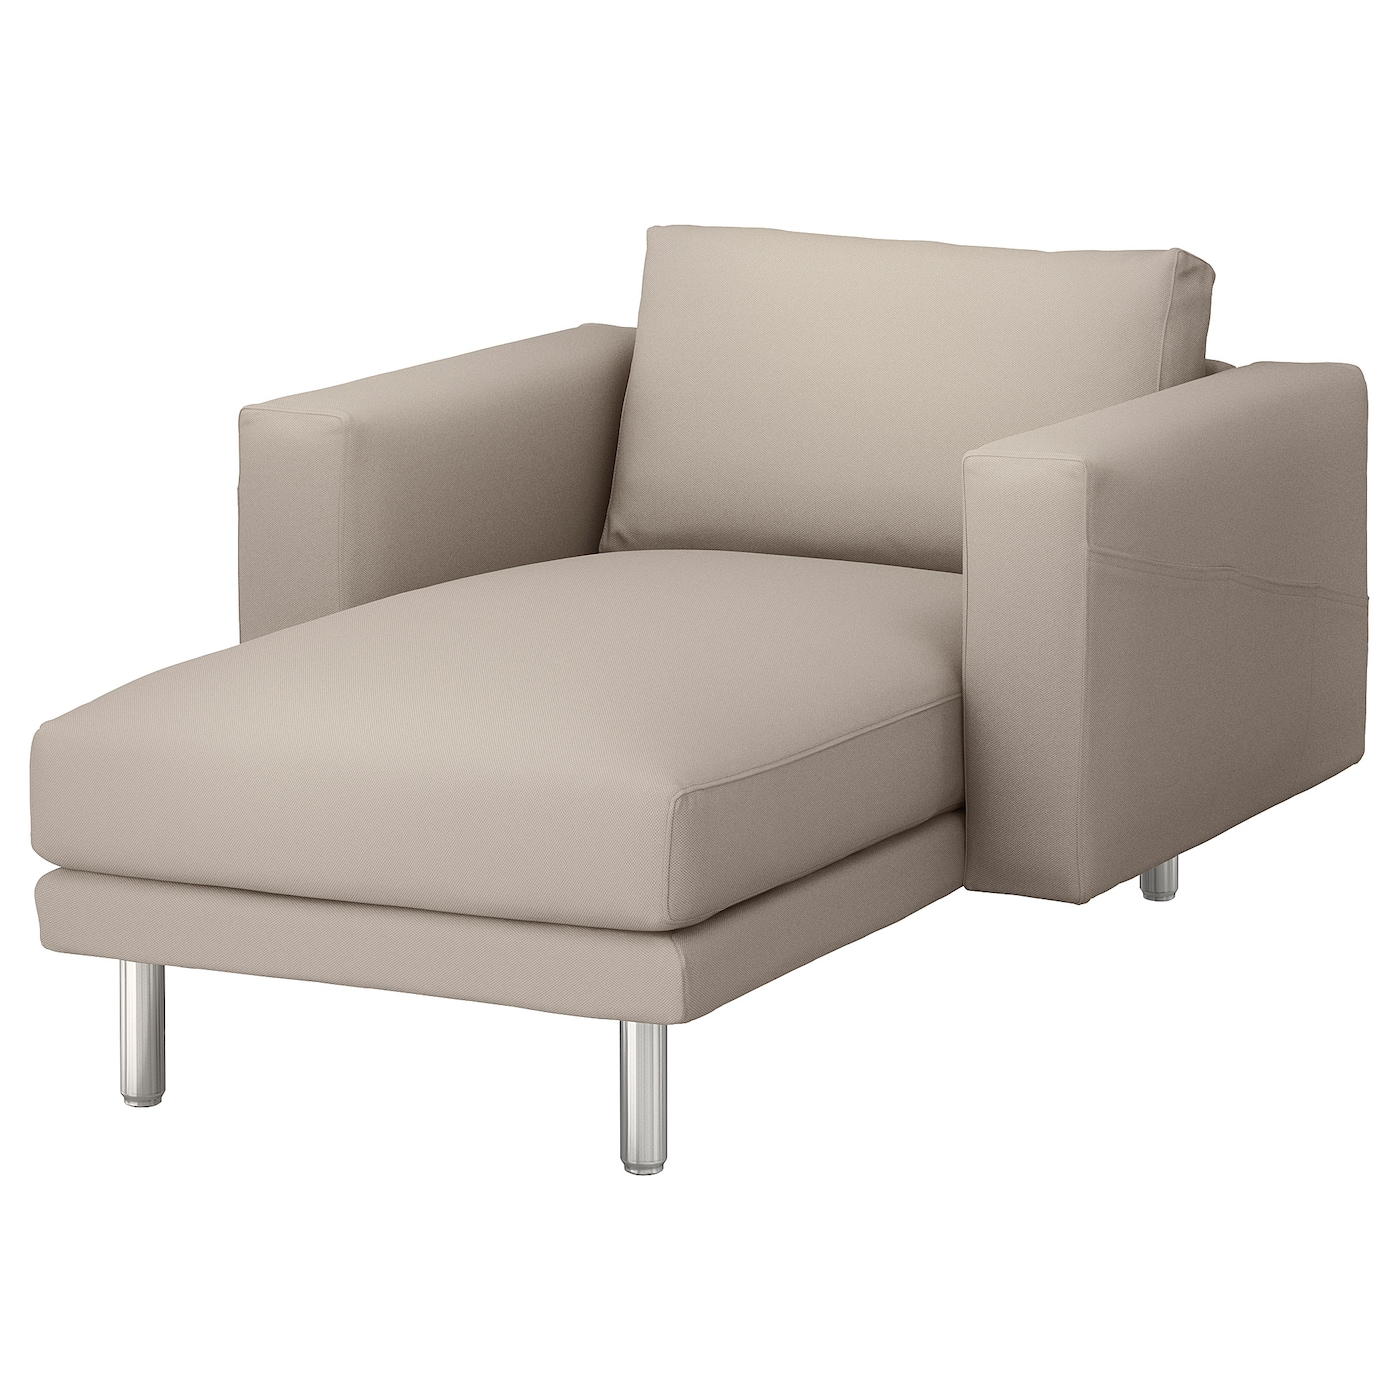 Ikea sofa with chaise kivik 3 seat sofa with chaise longue for Chaise longue jardin ikea